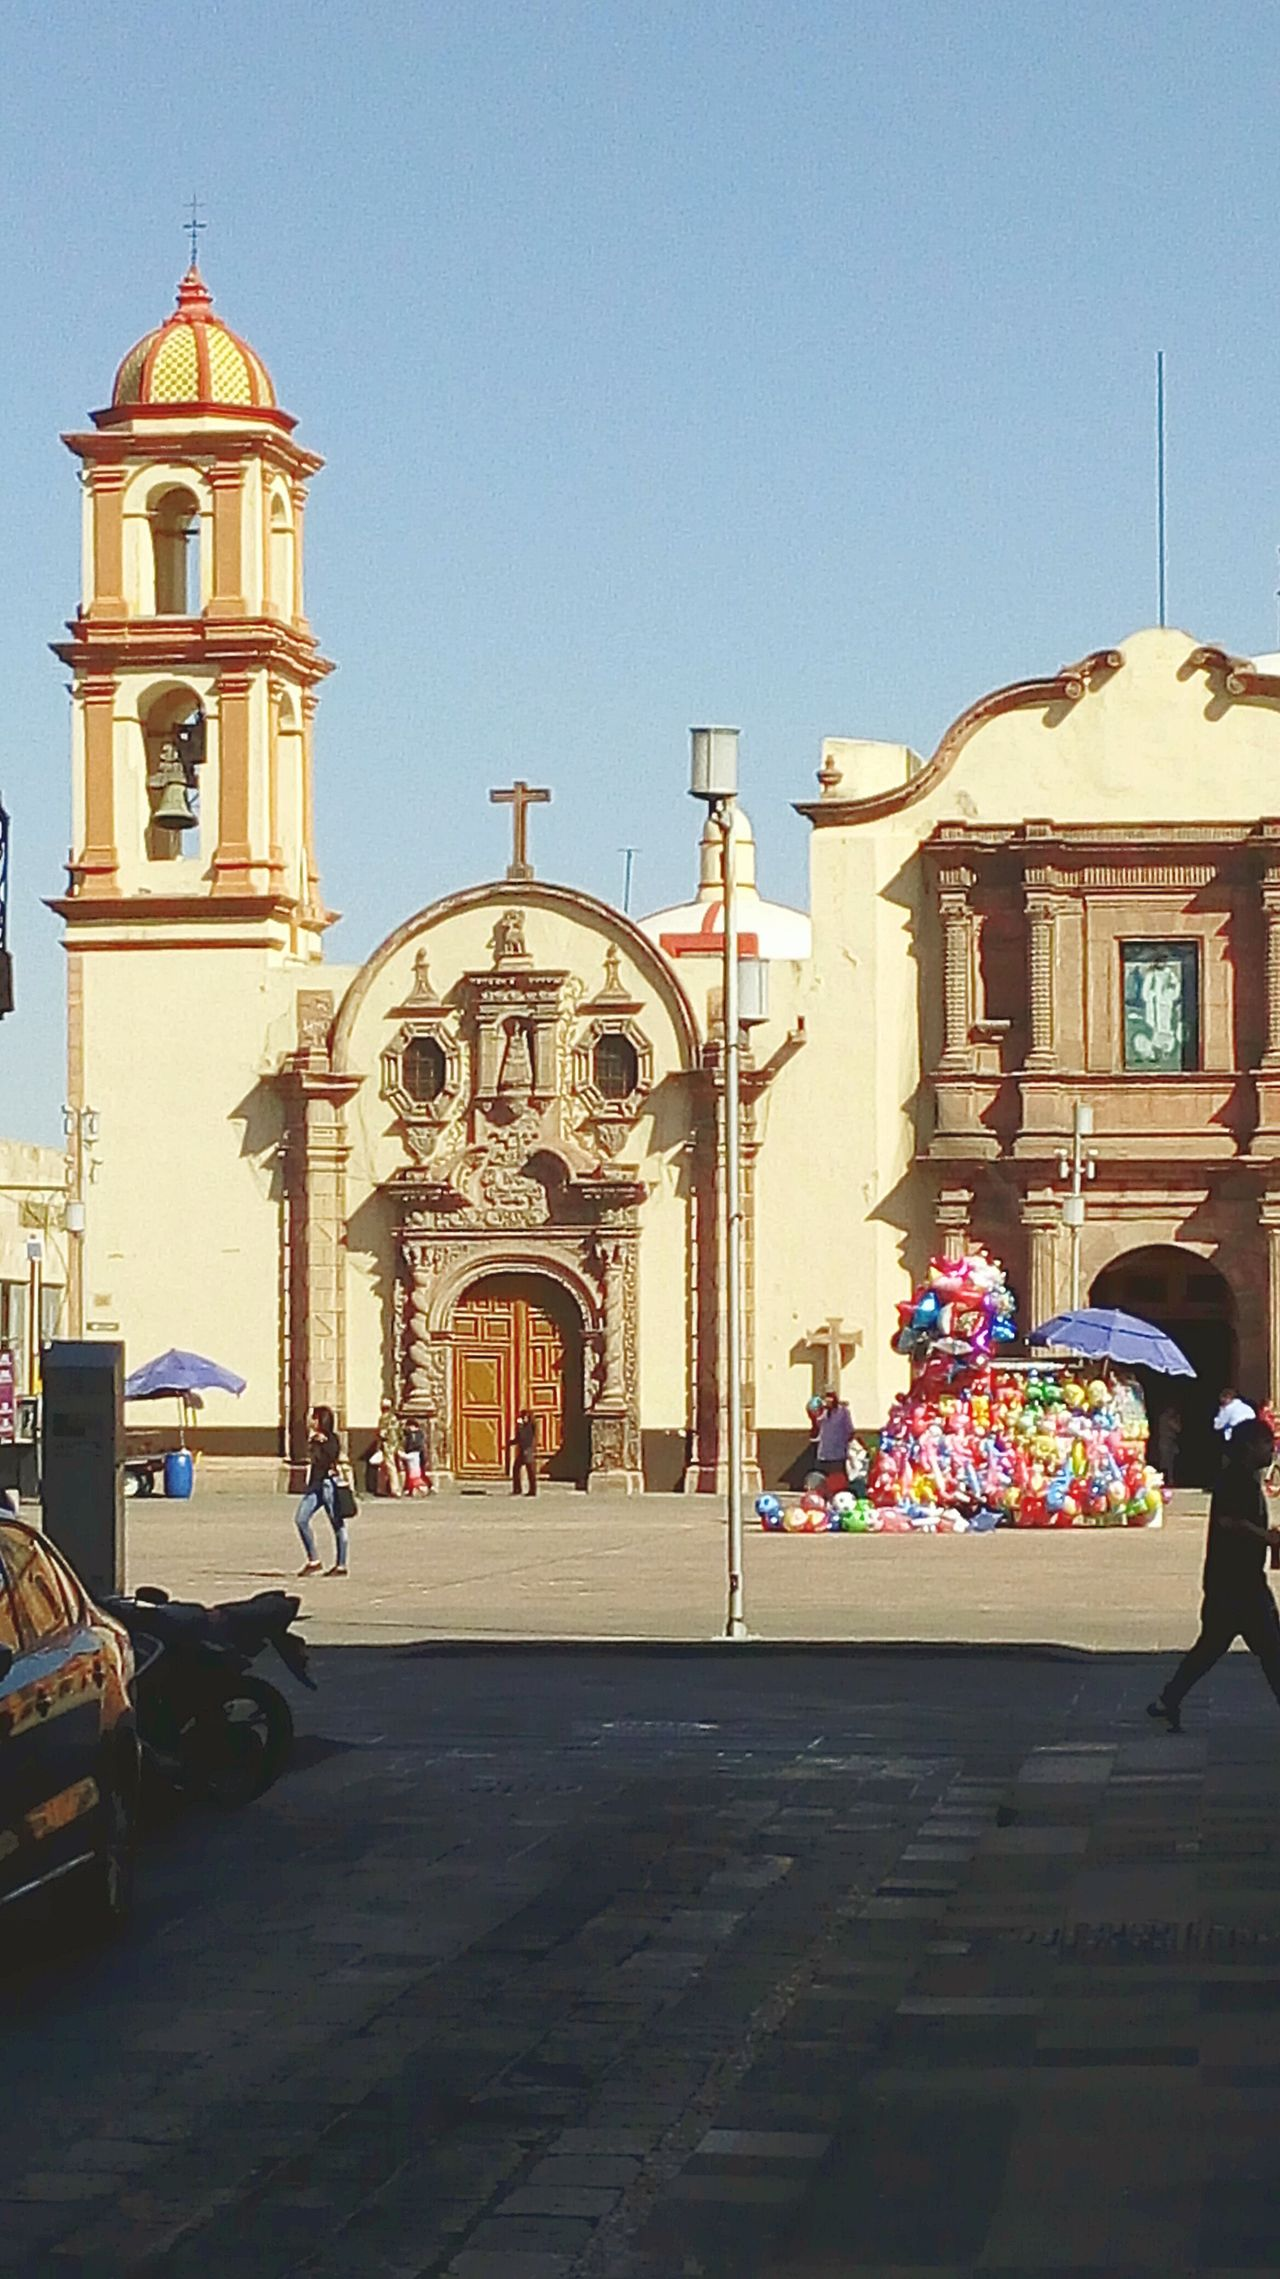 San Luis Potosí Plaza Fundadores Travel Destinations Travel City Architecture Vacations Clock Outdoors No People Day